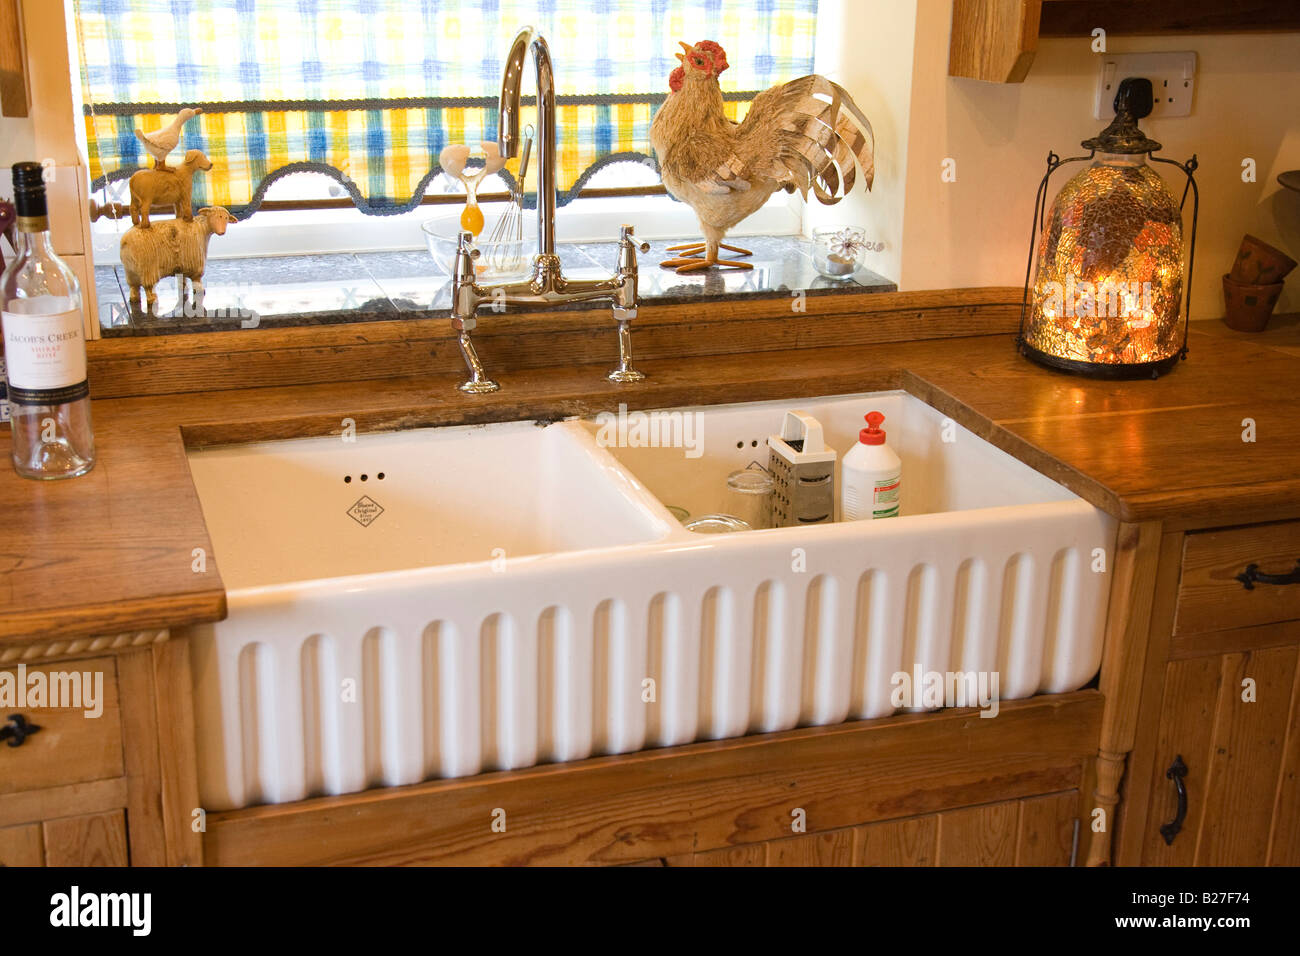 Shaws Ribchester 800 Traditional Belfast Ceramic Kitchen Sink Stock Photo Royalty Free Image